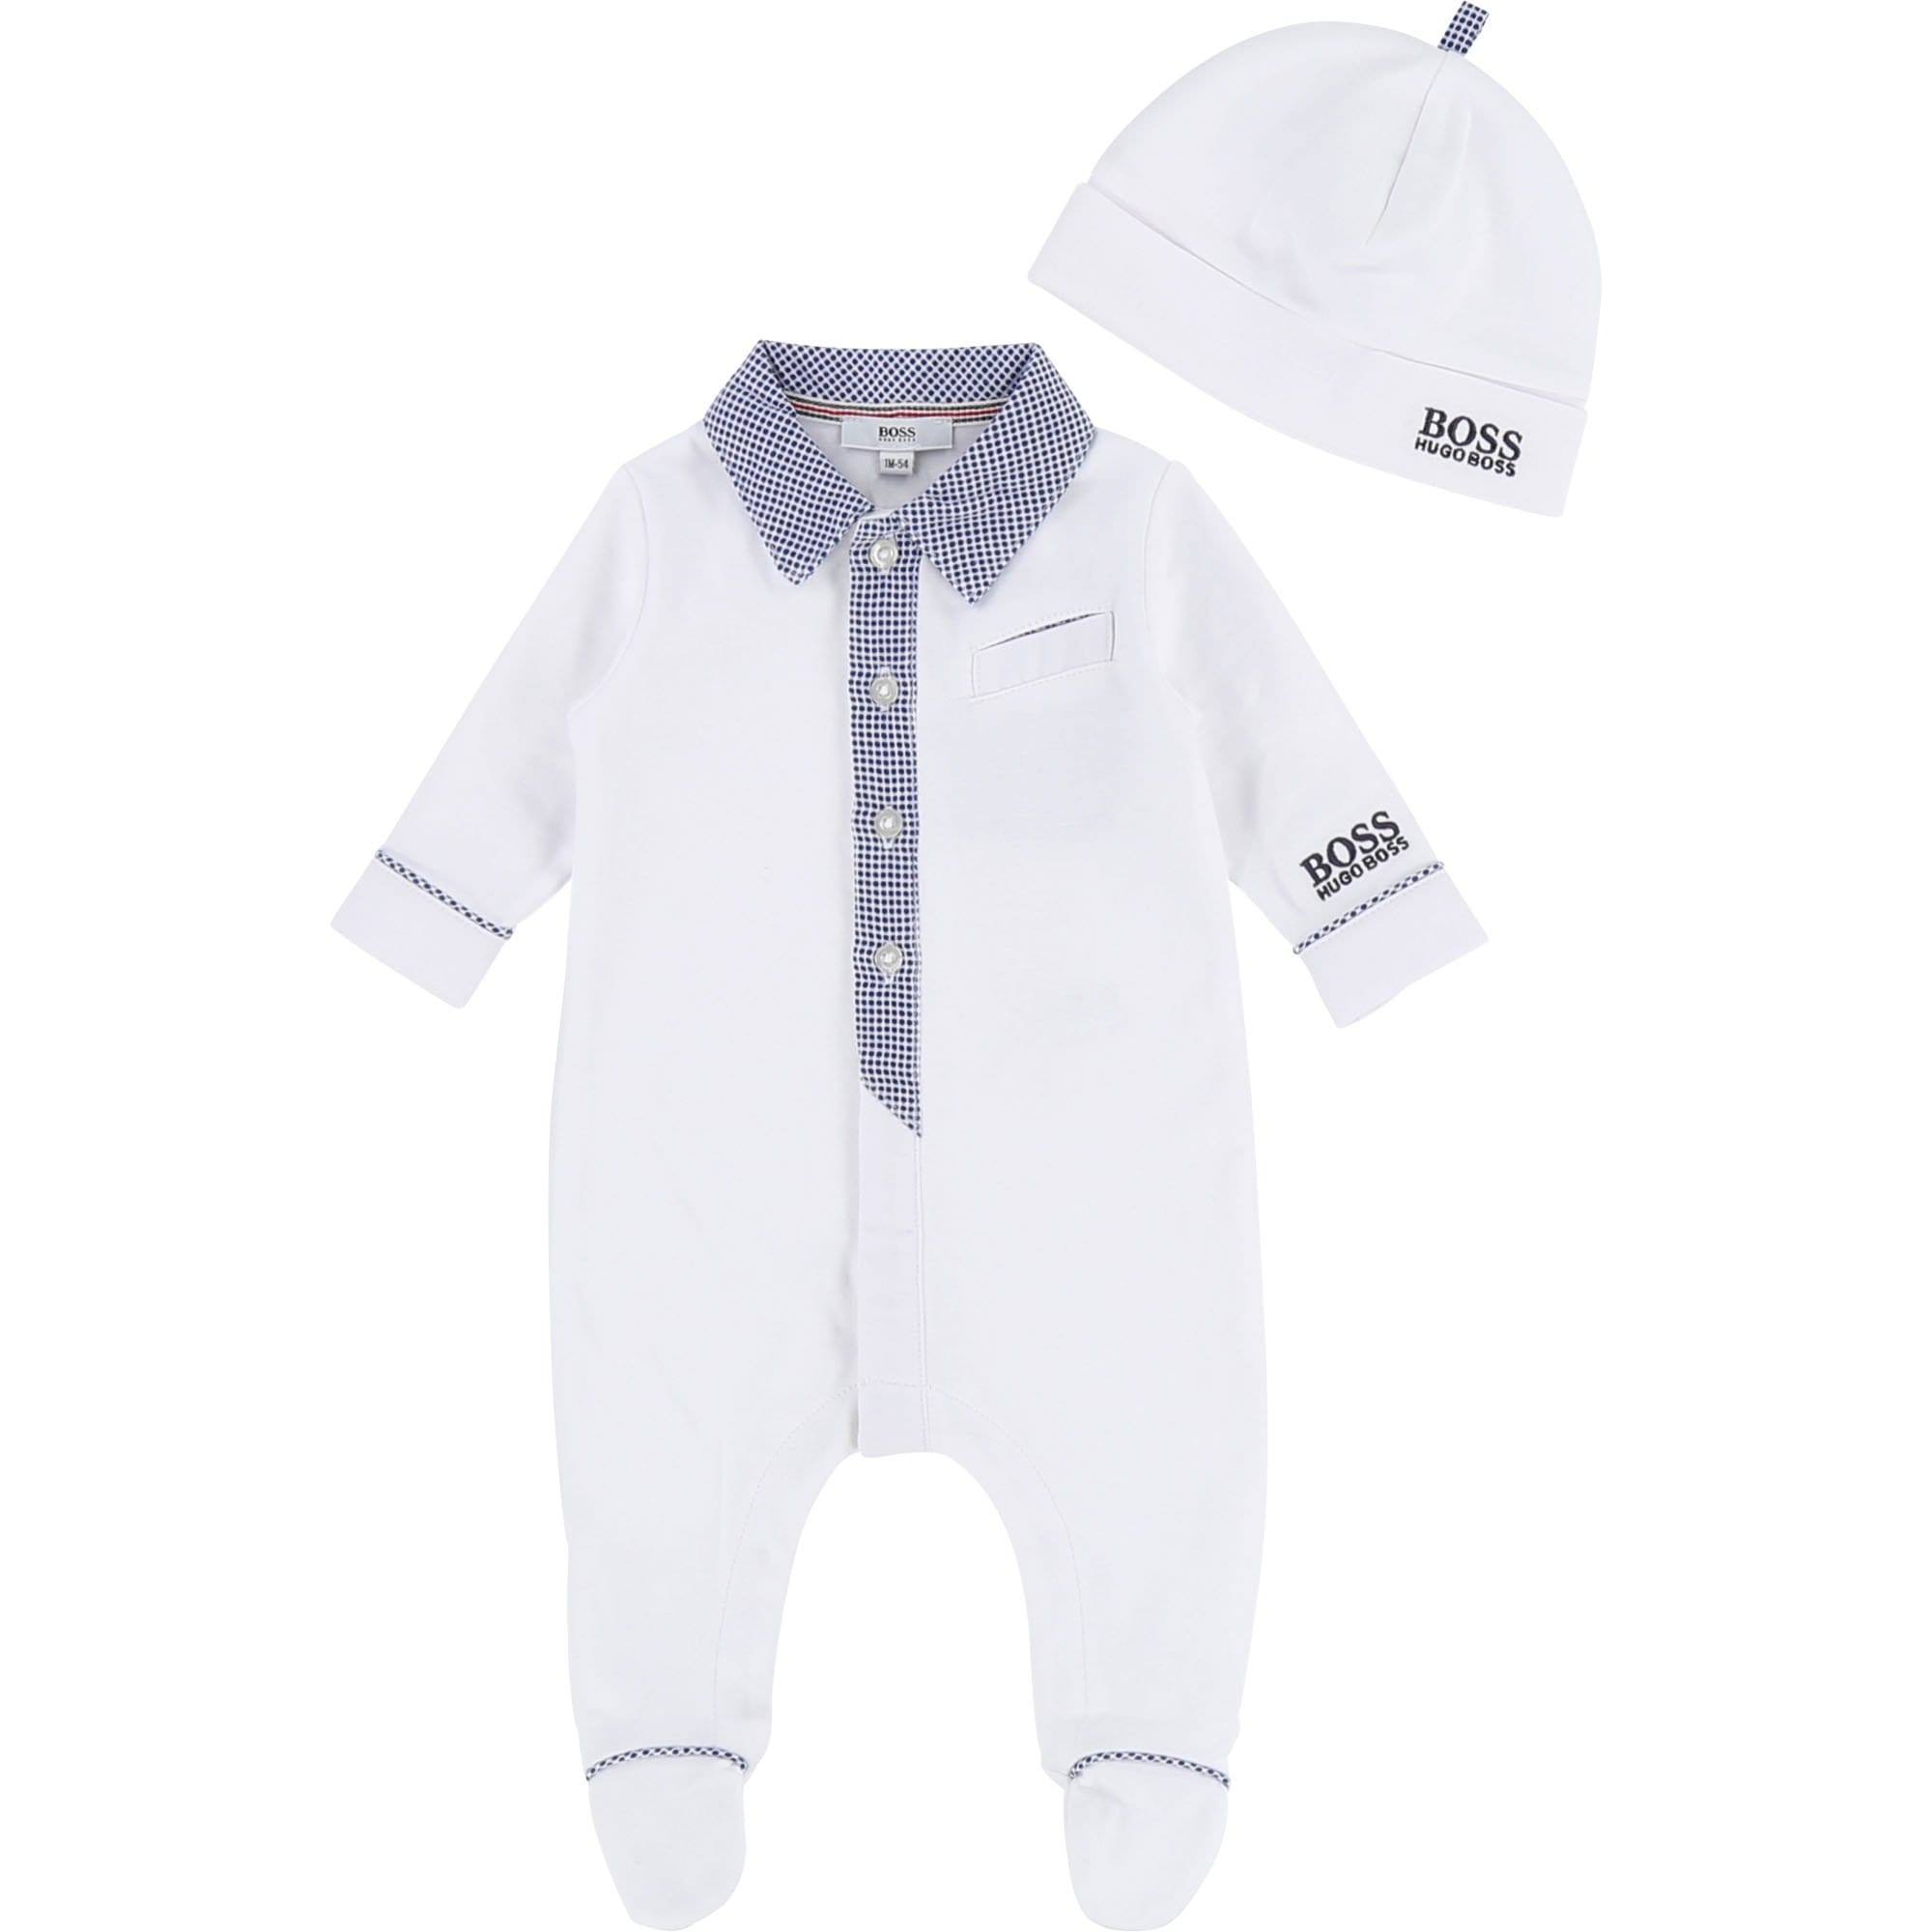 Hugo Boss Onsie Set with Beanie (4702957273219)